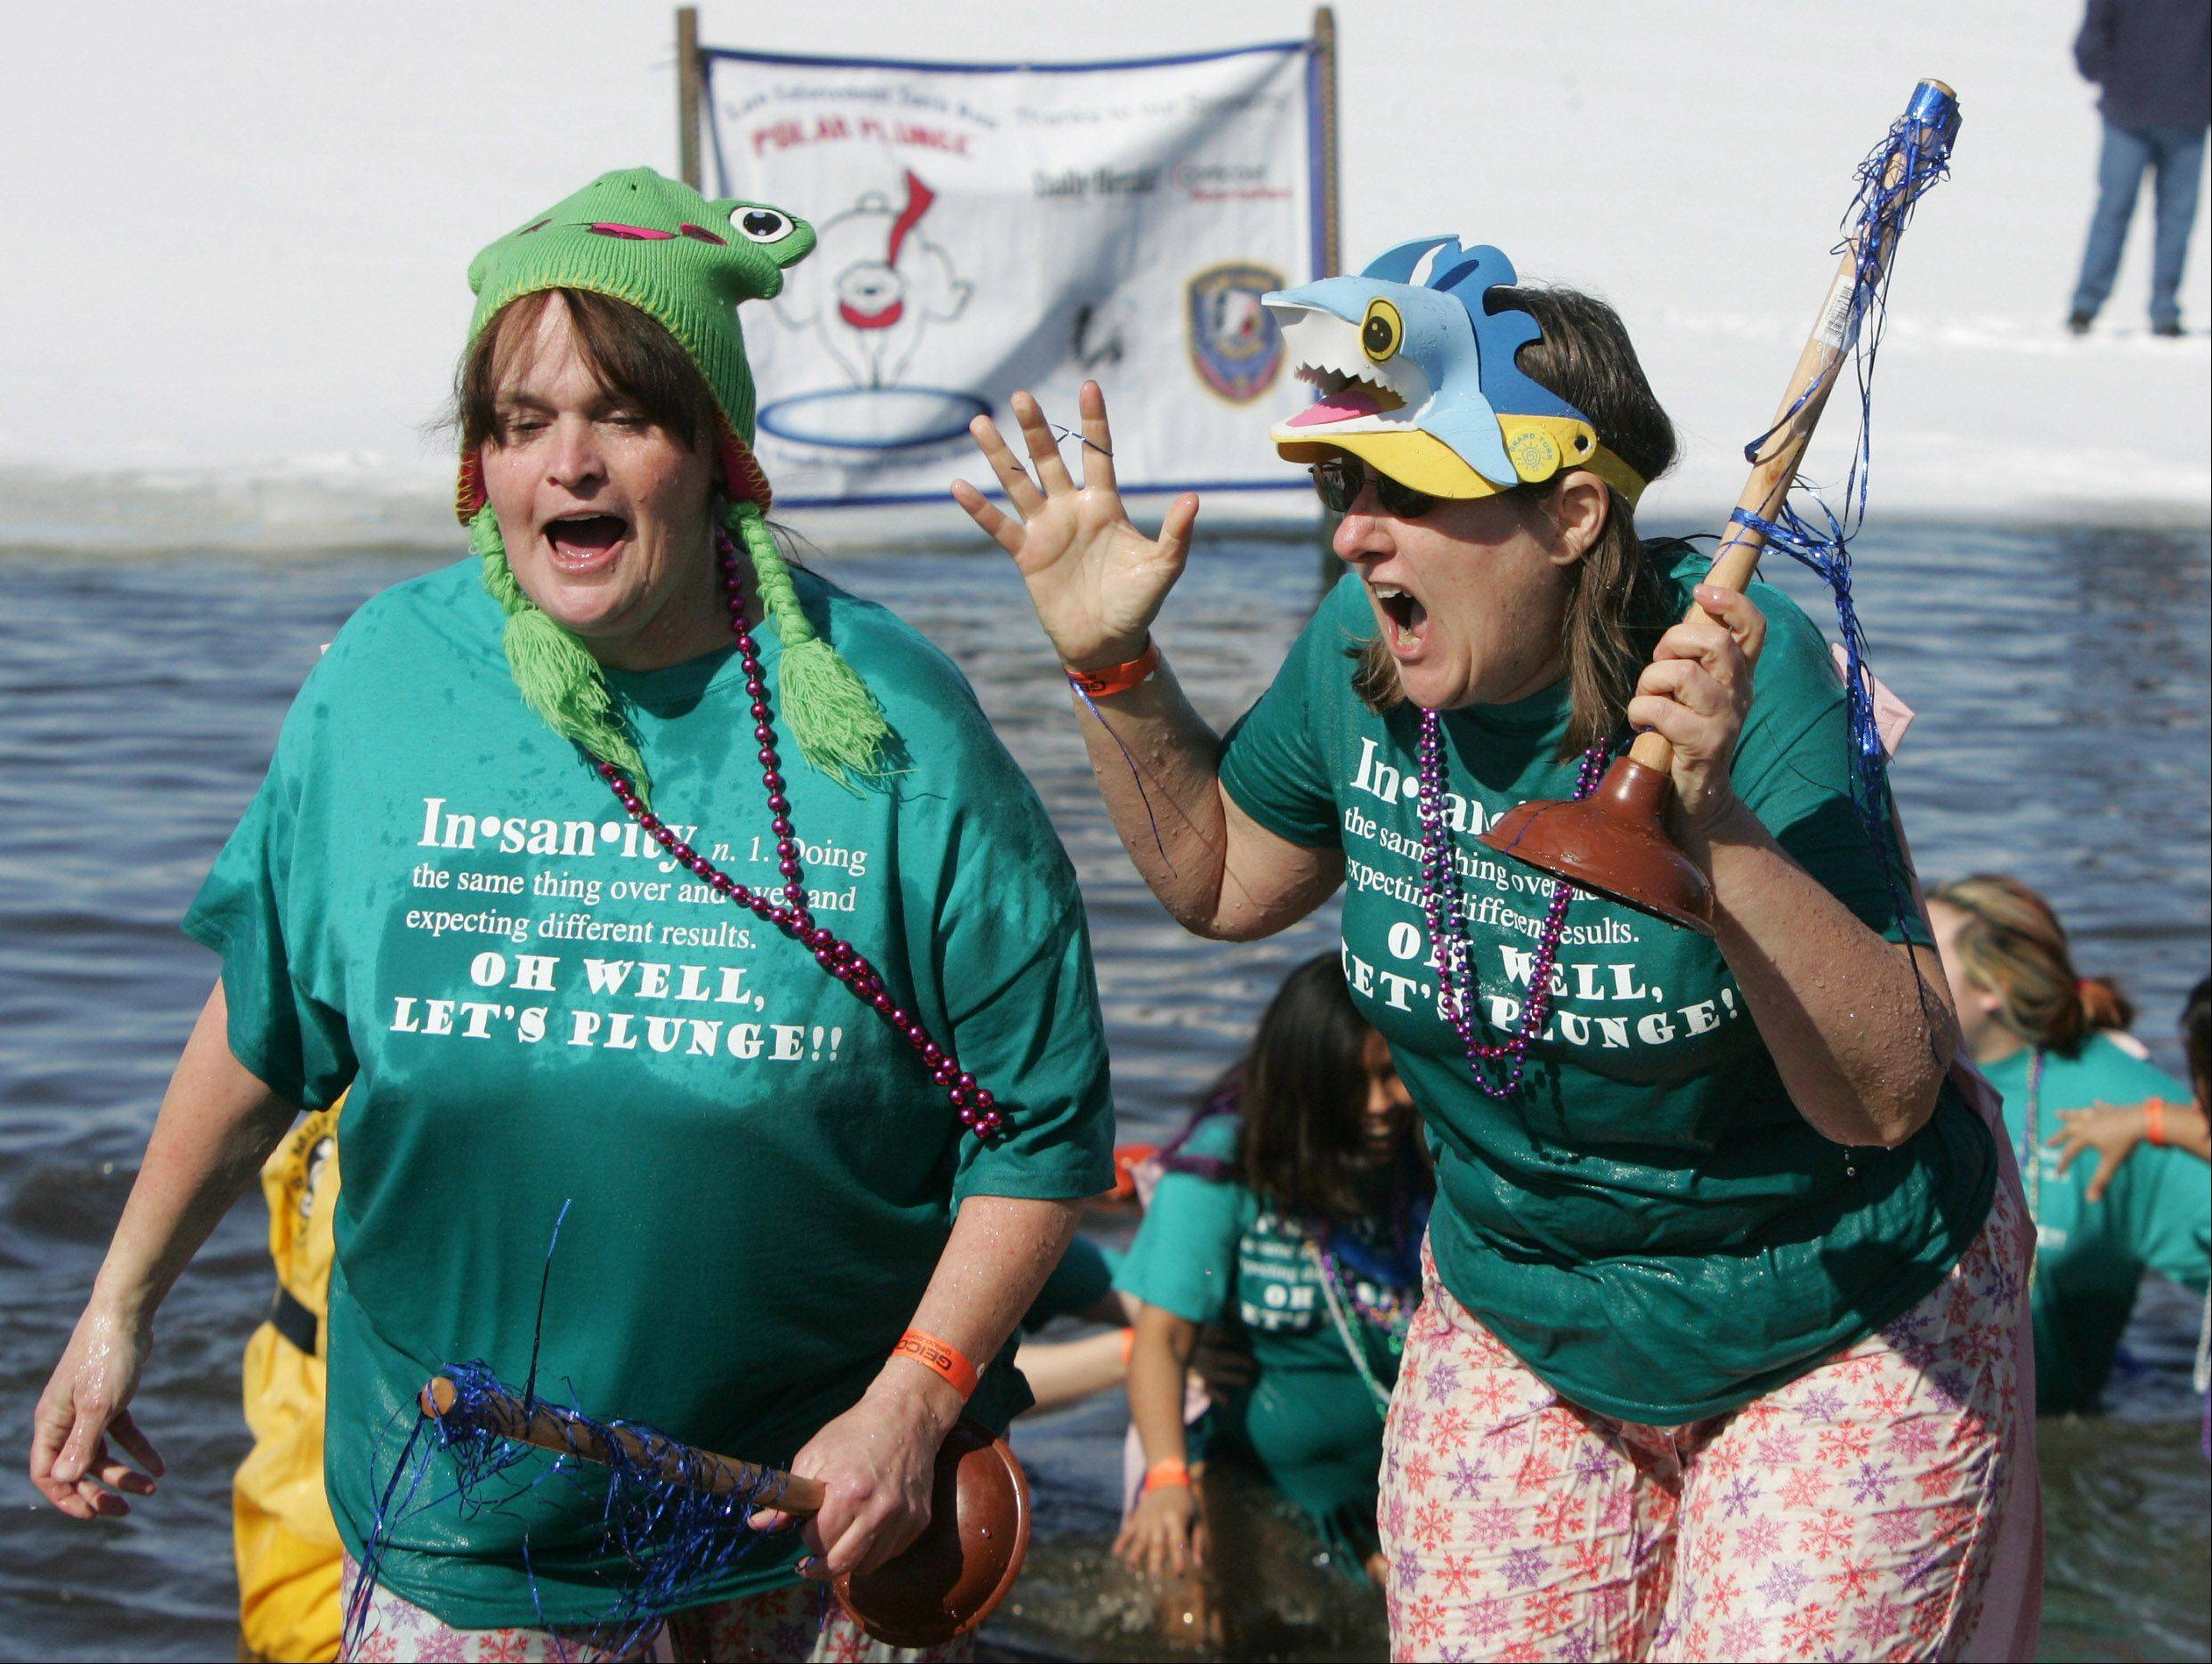 Candi Blake, left, and Kathy Gorman, of McHenry, scream after coming out of the frigid water during the annual Fox Lake Polar Plunge Sunday at Lakefront Park. The funds raised will benefit Special Olympics Illinois Northeastern/Area 13, which serves athletes with physical and intellectual disabilities in Lake and McHenry counties.